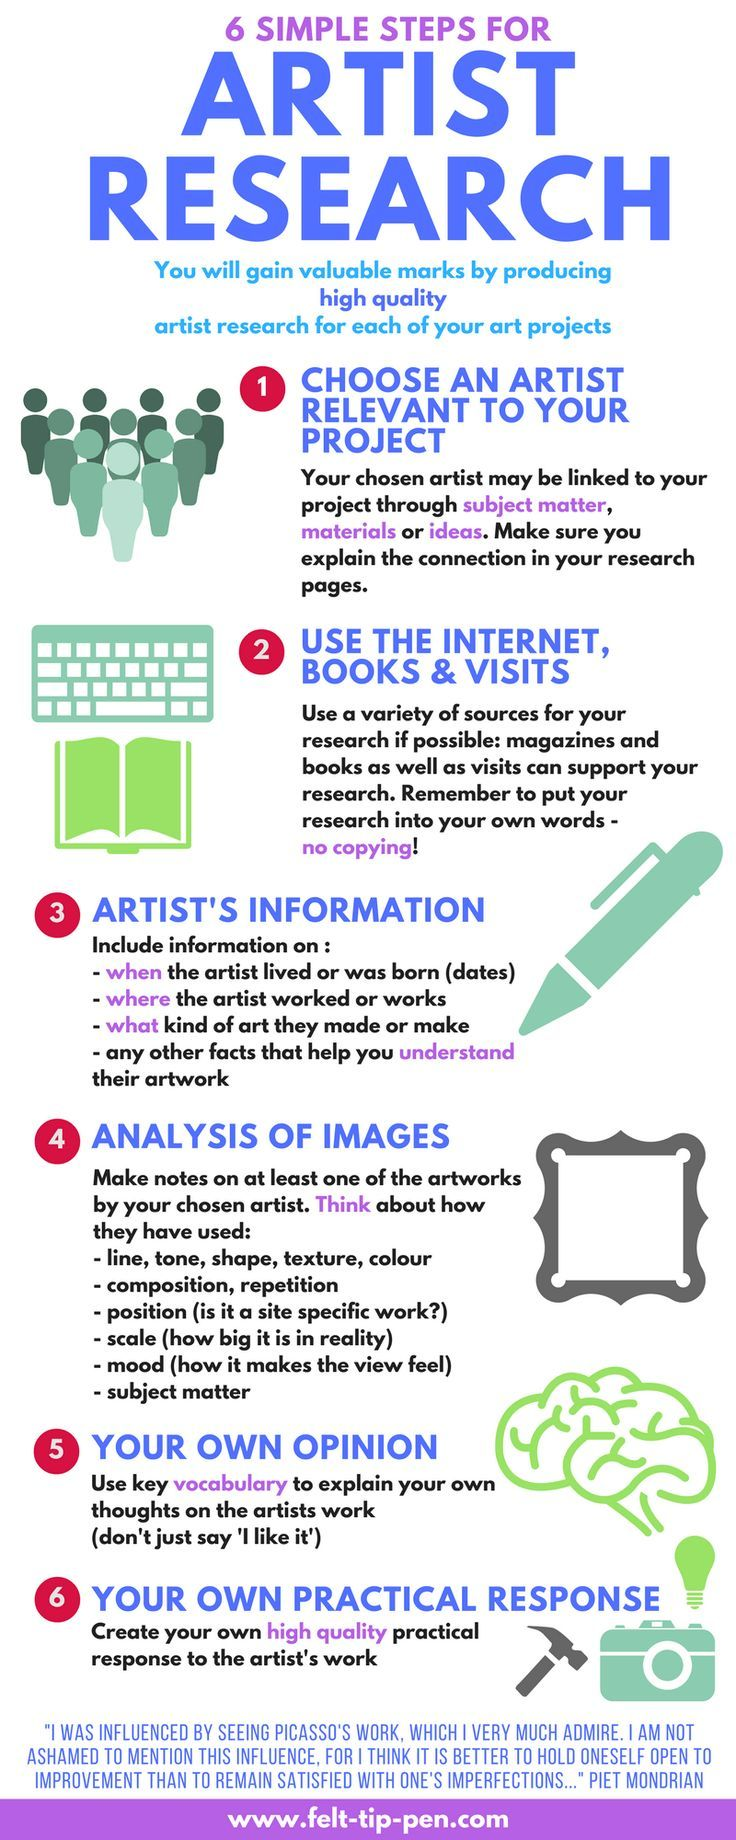 Freebie infographic download to support art & design students with artist research. How-to / step-by-step bookmark guidance. www.felt-tip-pen.com